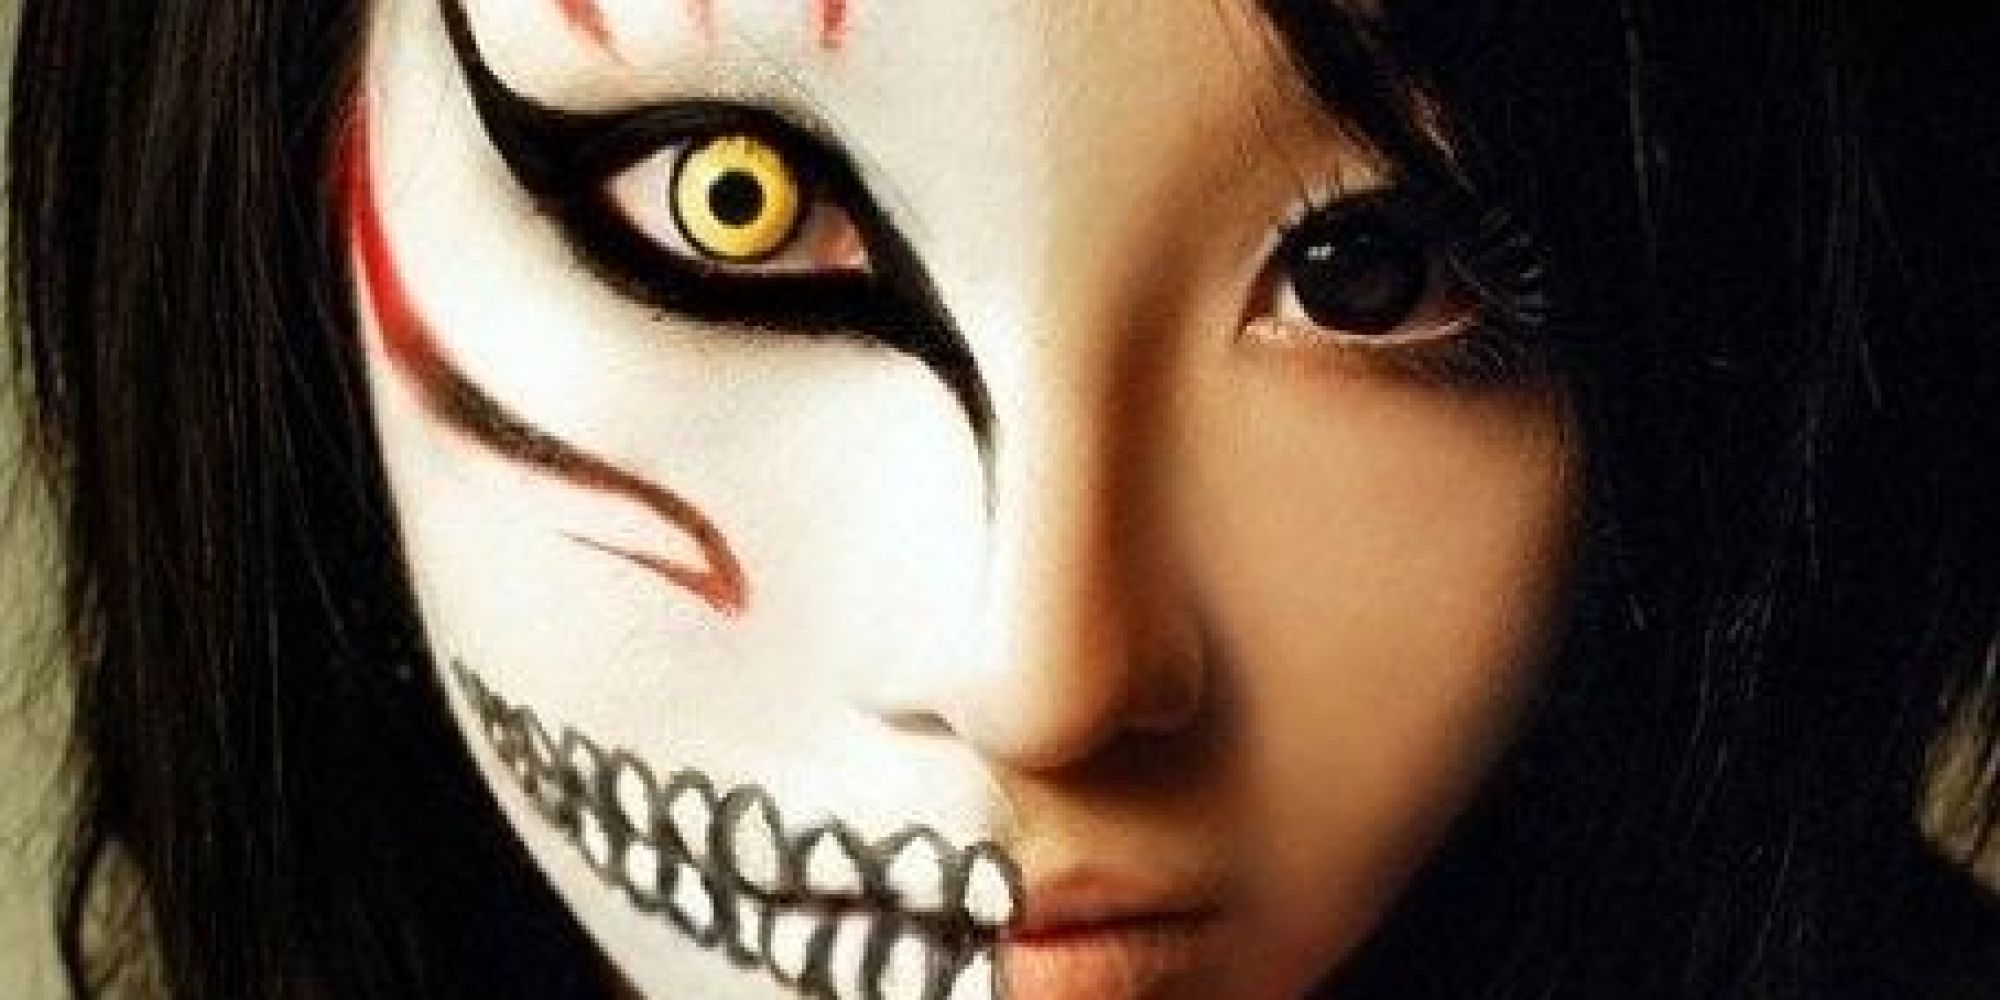 Scariest Halloween Makeup Best Looks To Frighten Your Friends Photos